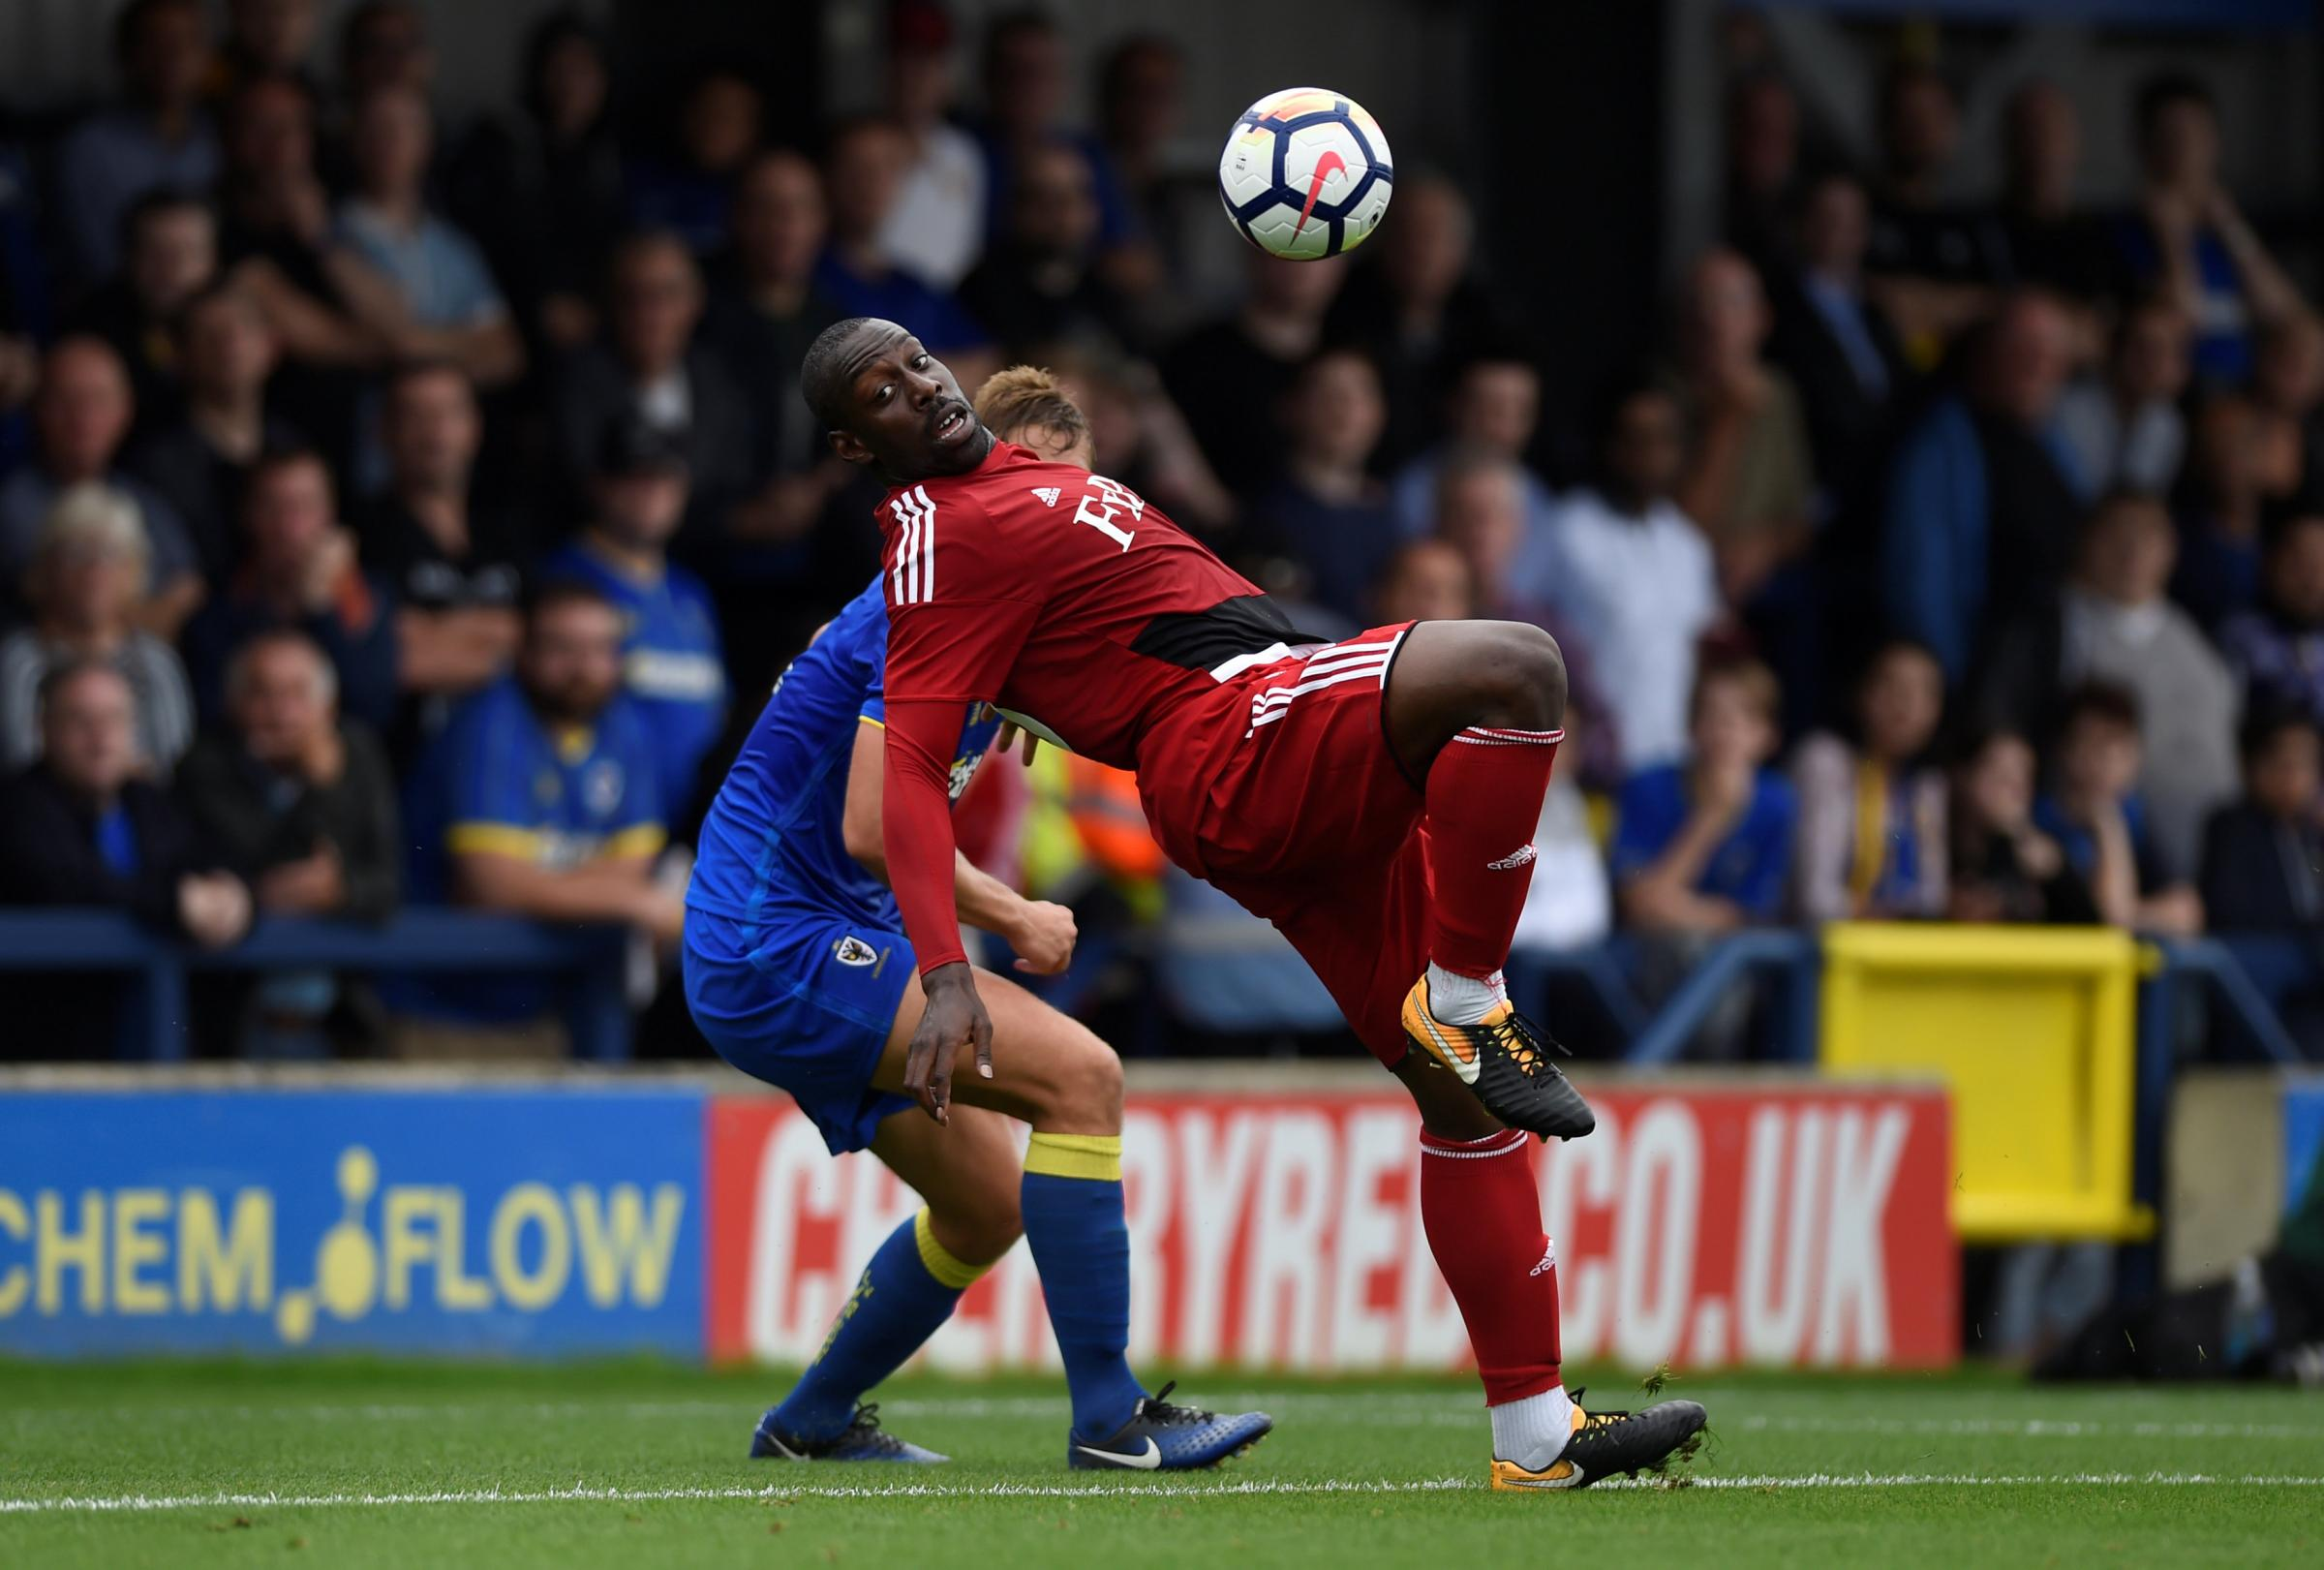 Stefano Okaka tries an acrobatic attempt. Picture: Action Images